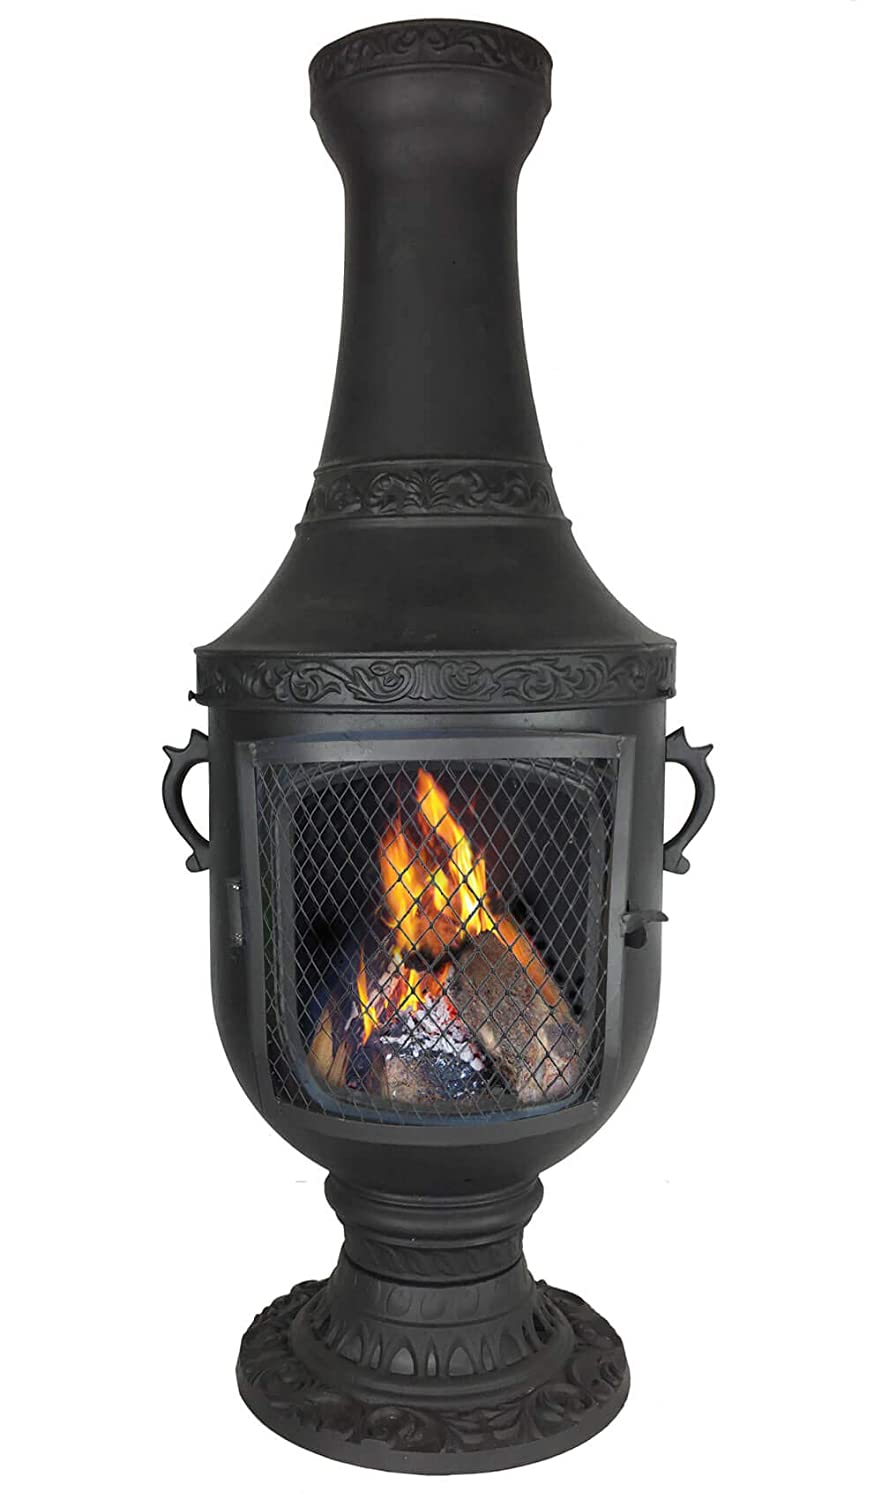 The Venetian Grill Oven Chiminea in Charcoal CAST Aluminum